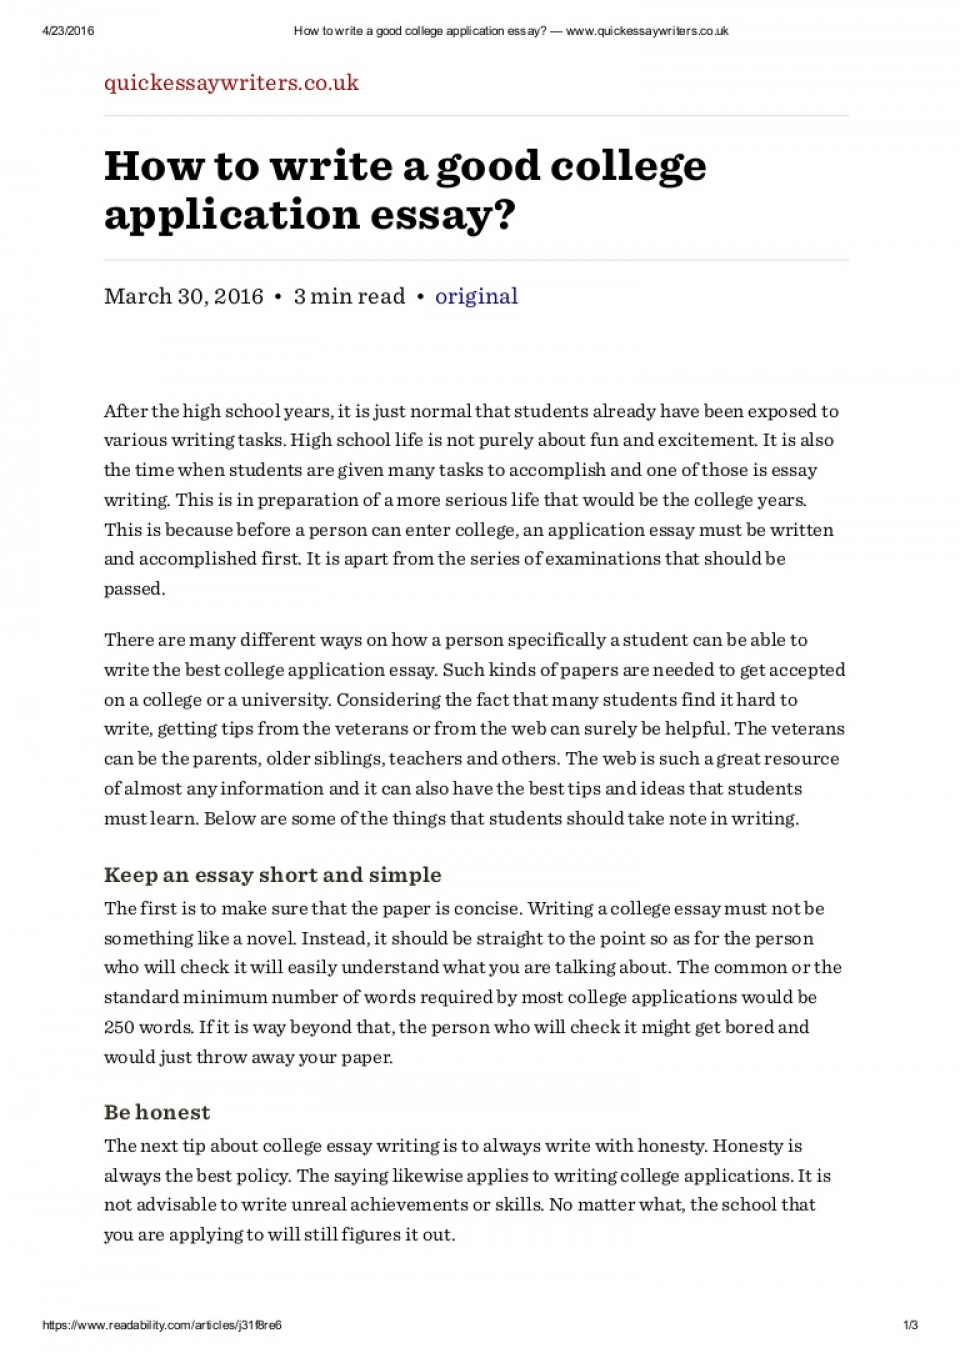 009 Howtowriteagoodcollegeapplicationessaywww Thumbnail Essay Example Writing College Rare A Application Tips For Great How To Write That Stands Out Of 960